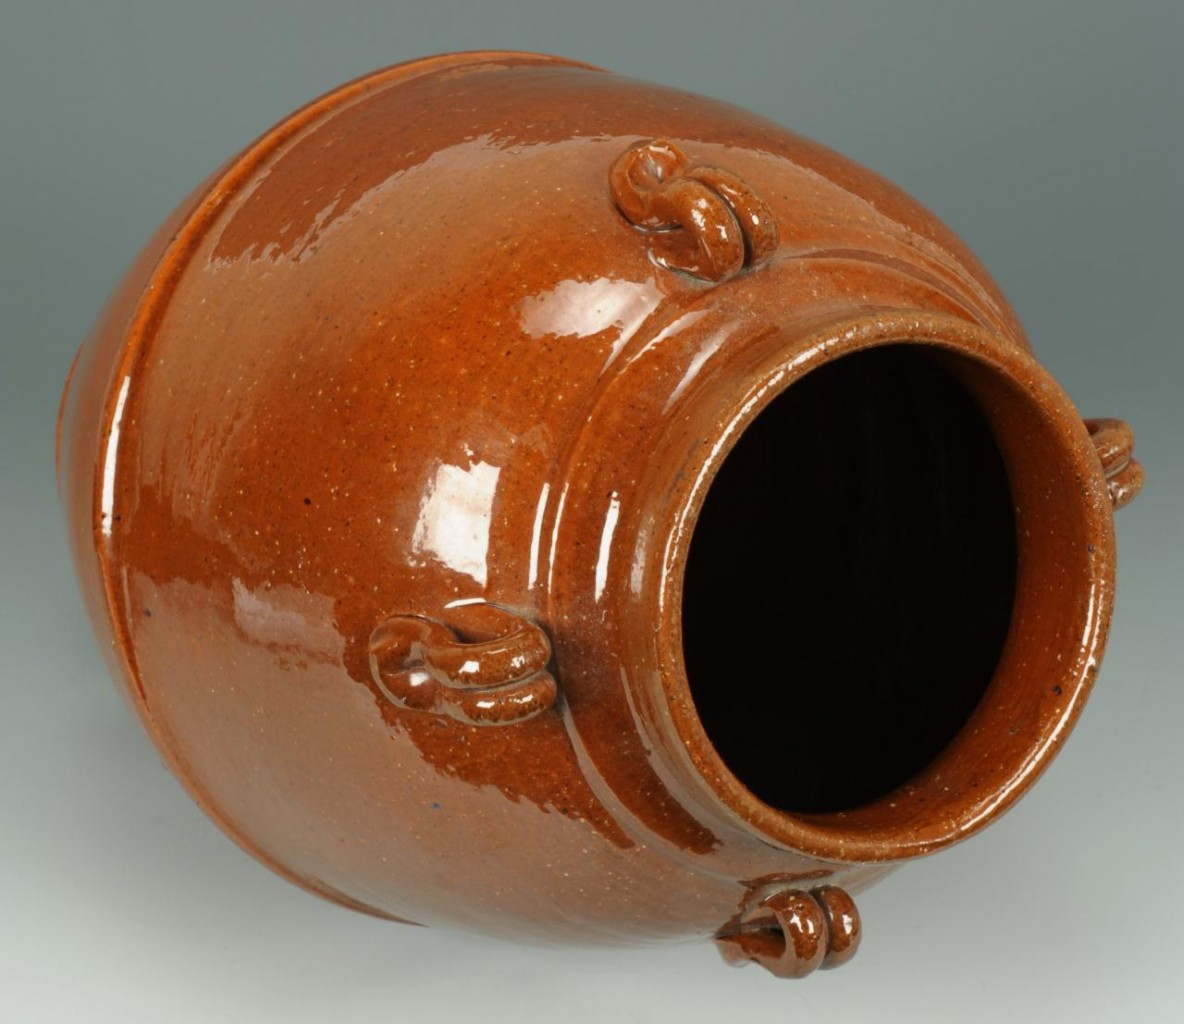 Lot 253: NC Jugtown Pottery Vase, Ben Owen